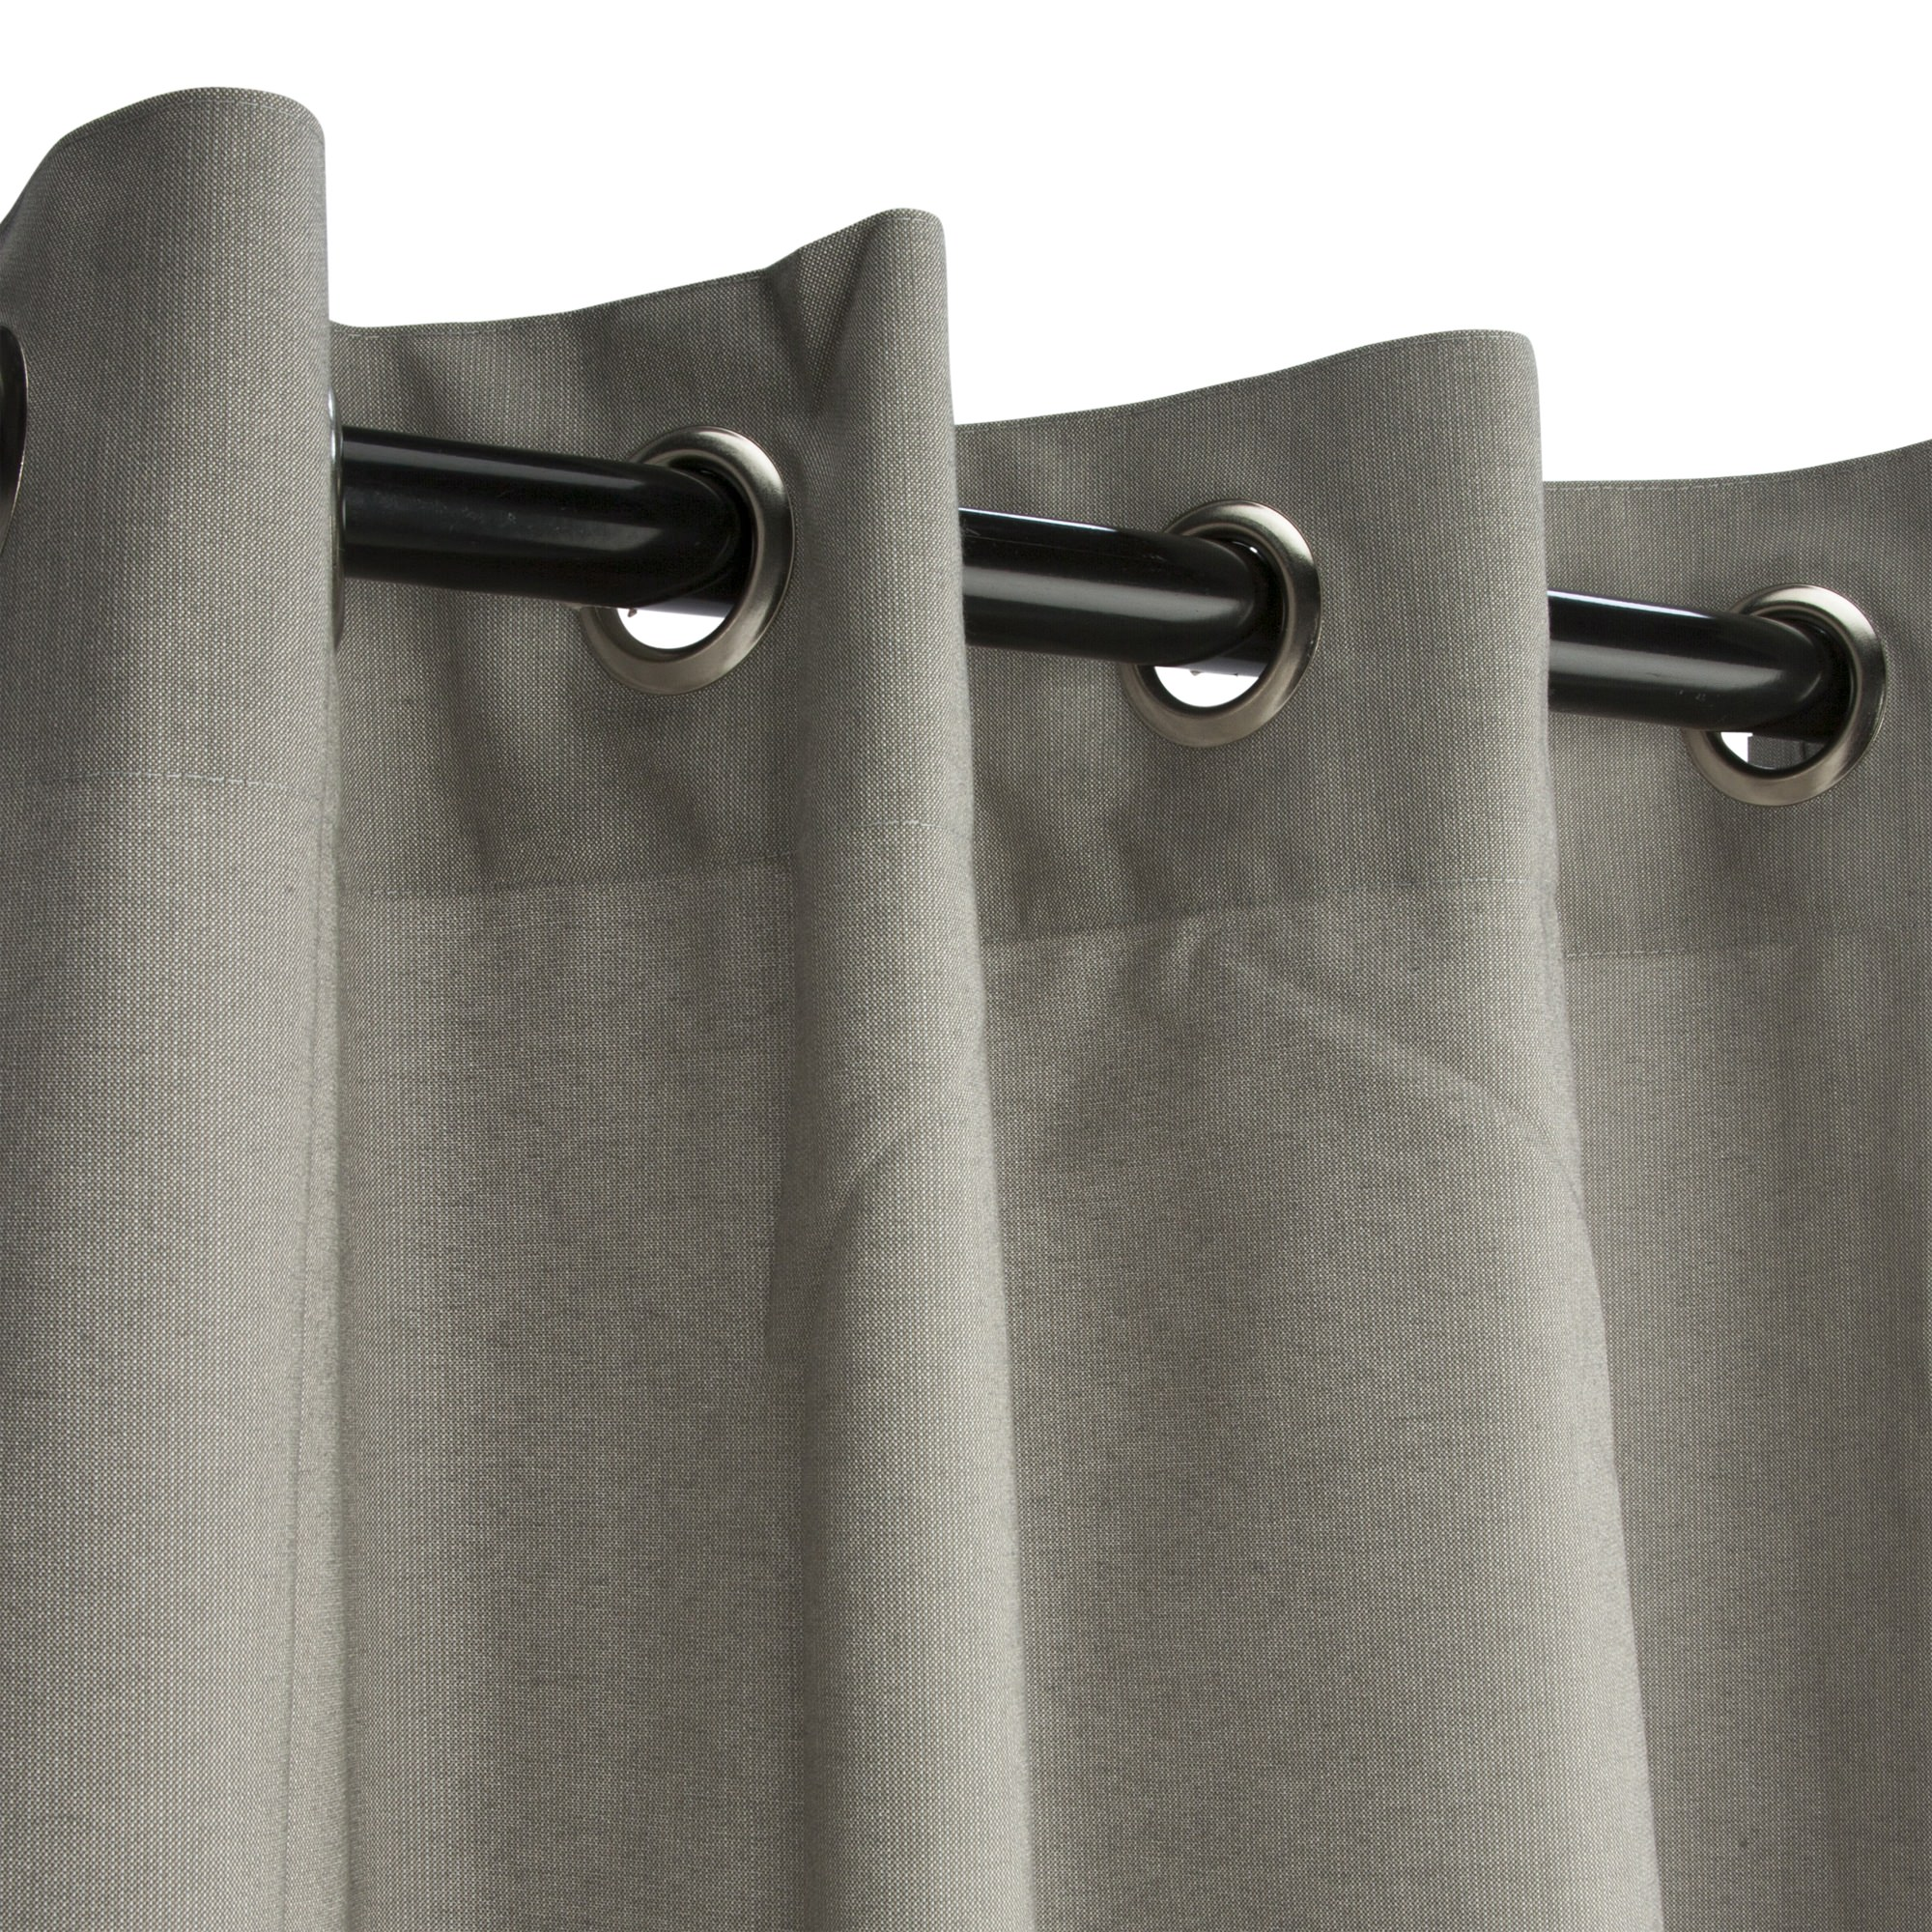 Sunbrella Spectrum Dove Outdoor Curtain With Grommets